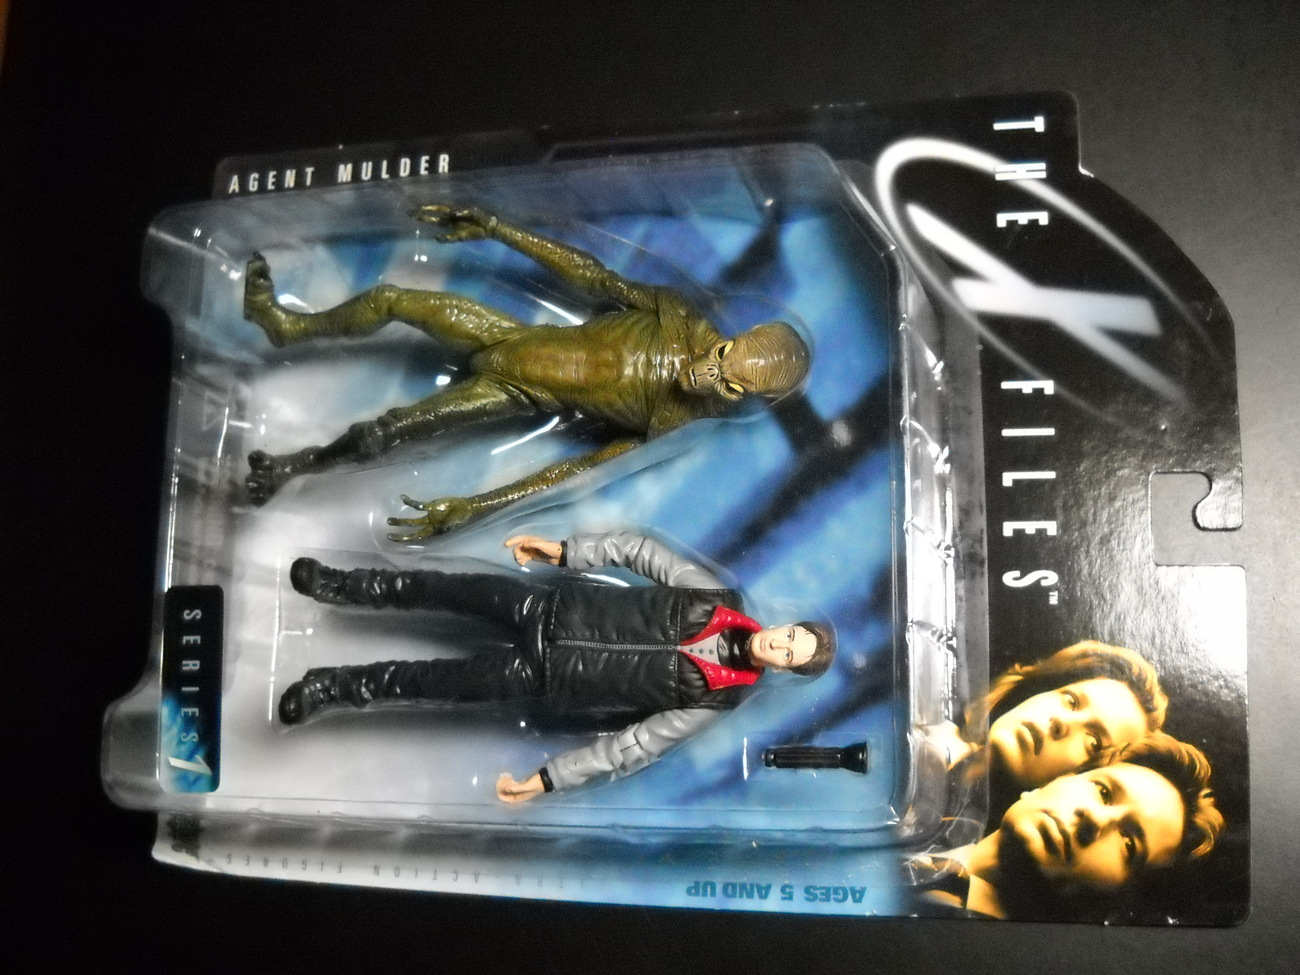 Toy x files mcfarlane 1998 series one agent mulder in parka vest with green alien moc 04